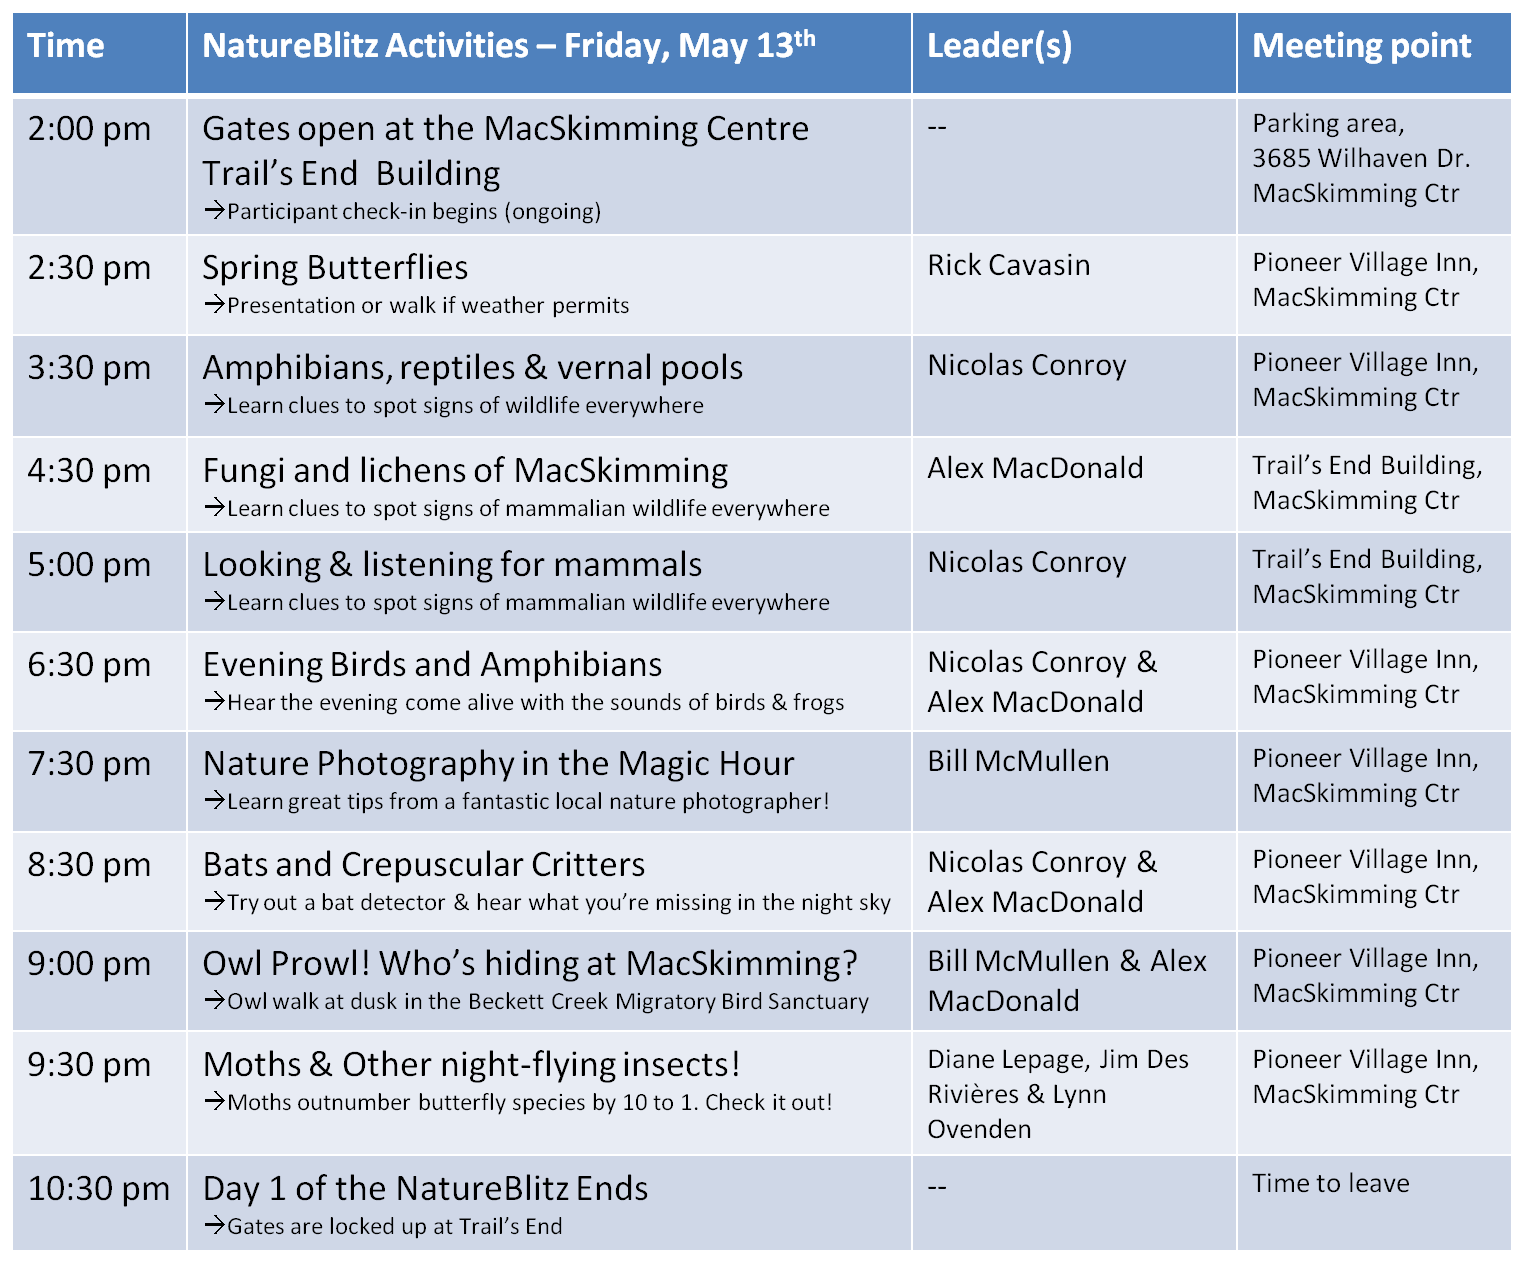 Schedule of events for Day 1 of the MacSkimming NatureBlitz